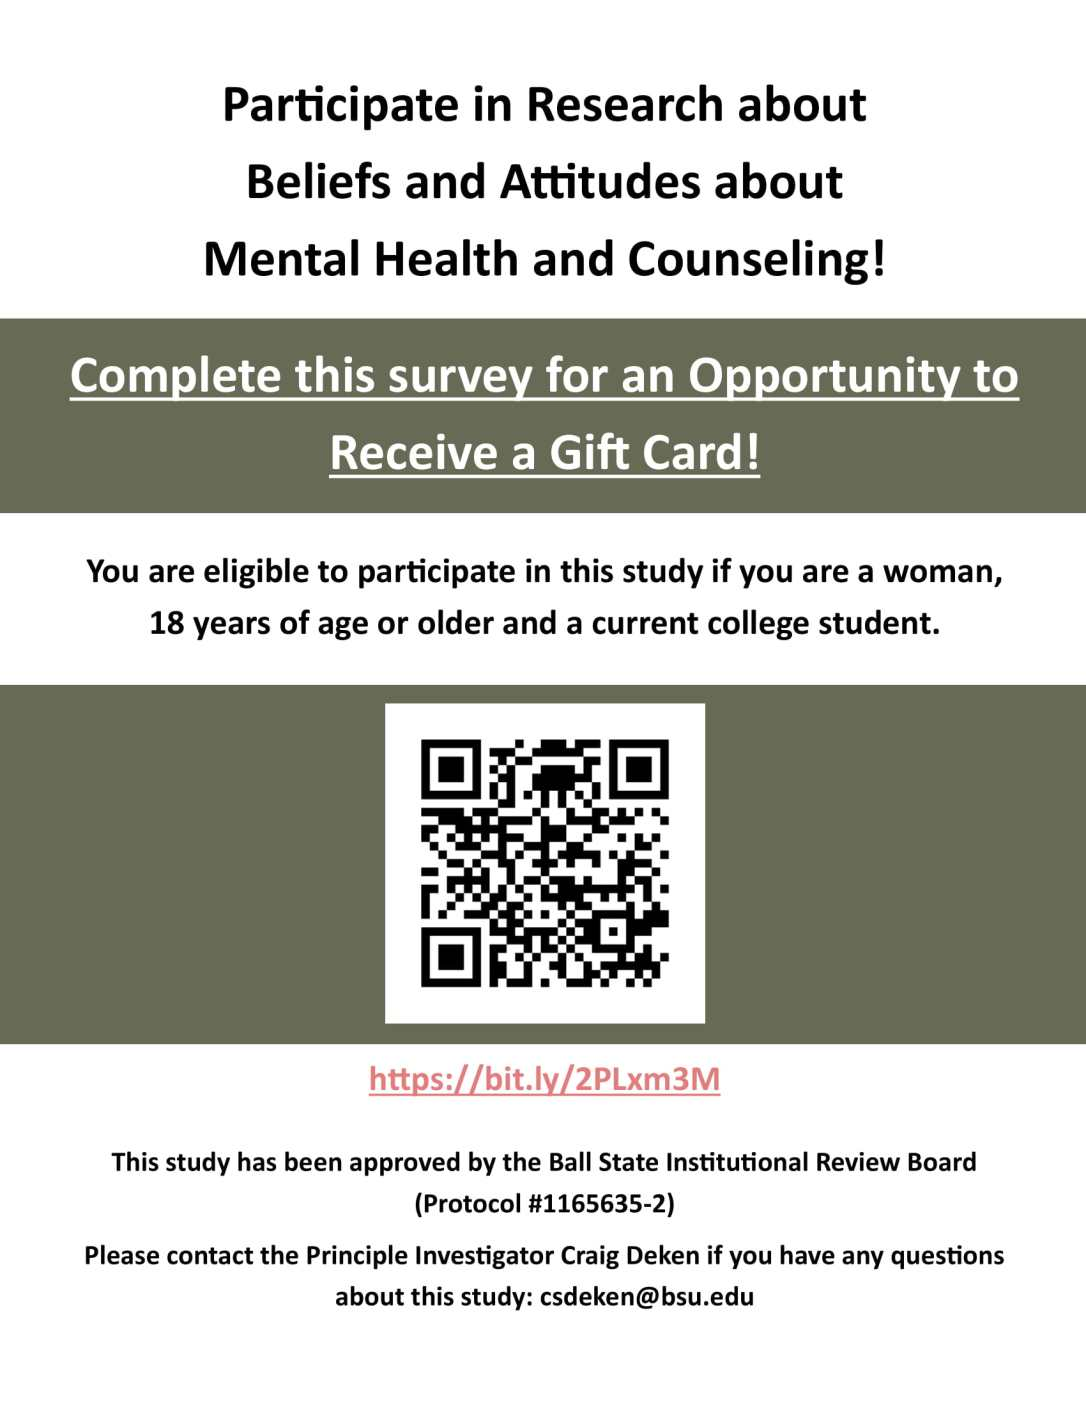 Survey Concerning Beliefs and Attitudes about Mental Health and